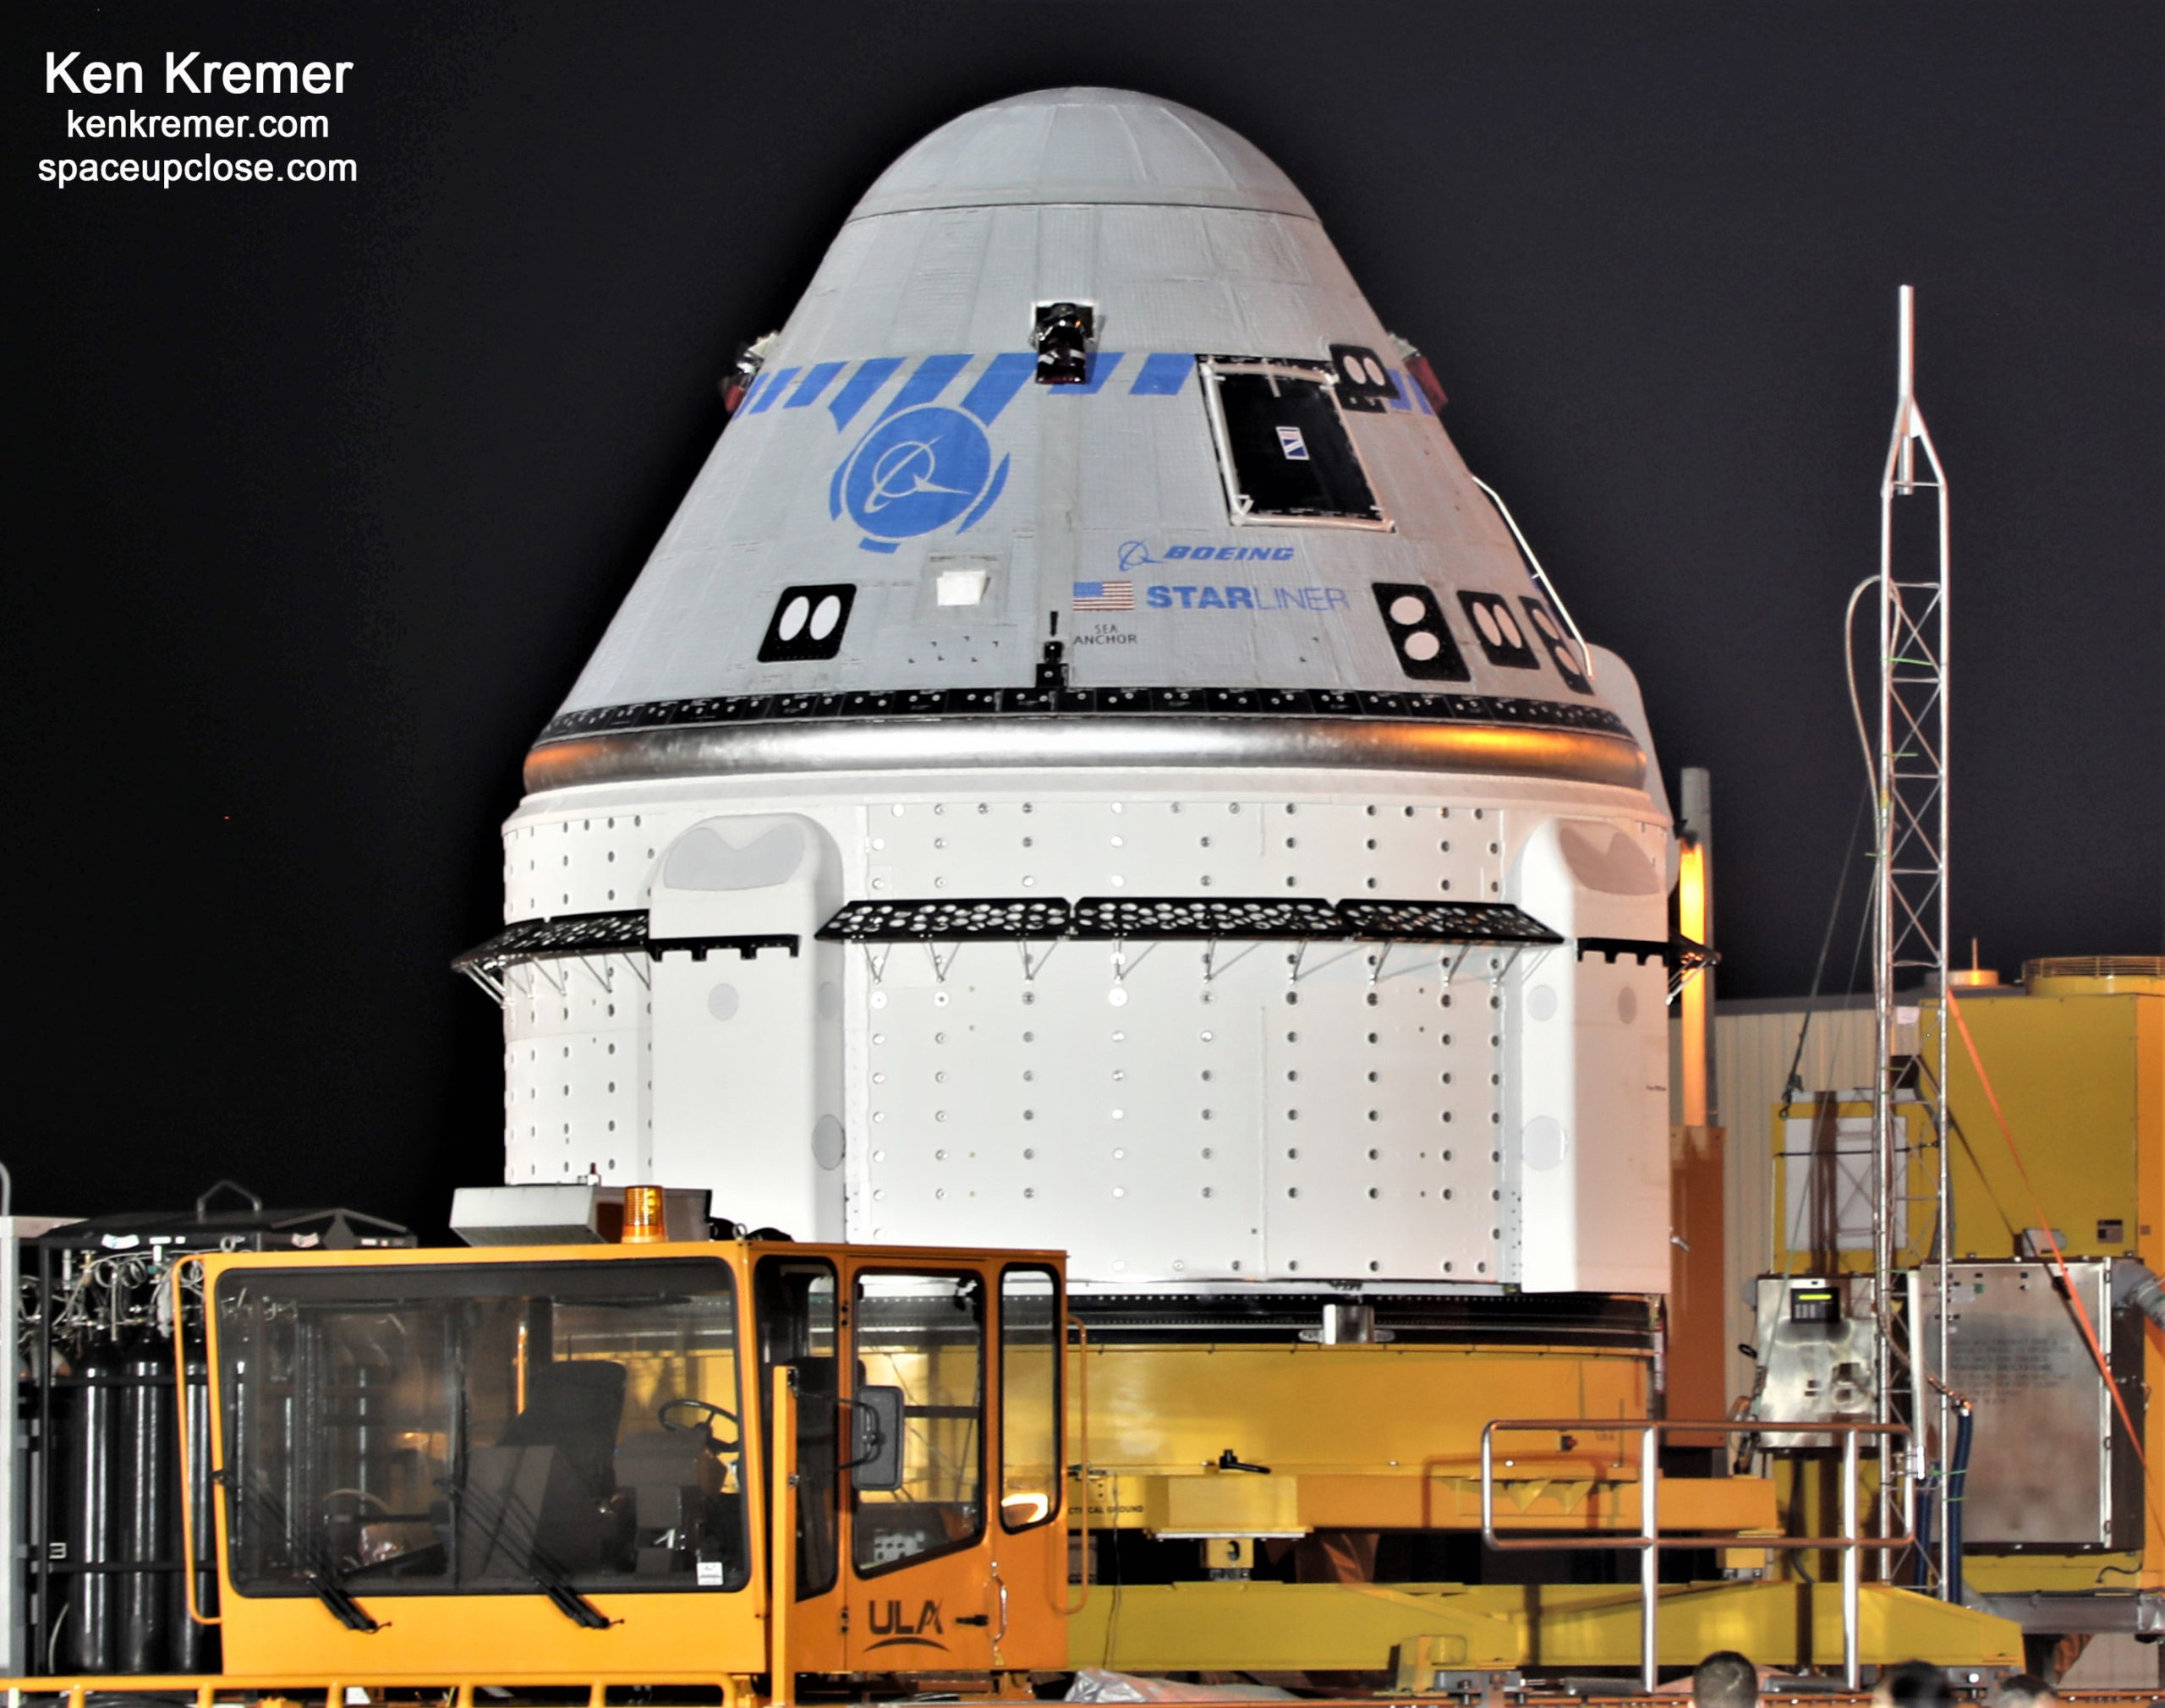 NASA Postpones Boeing Starliner Test Flight into 2022 as Faulty Thruster Root Cause Search Continues